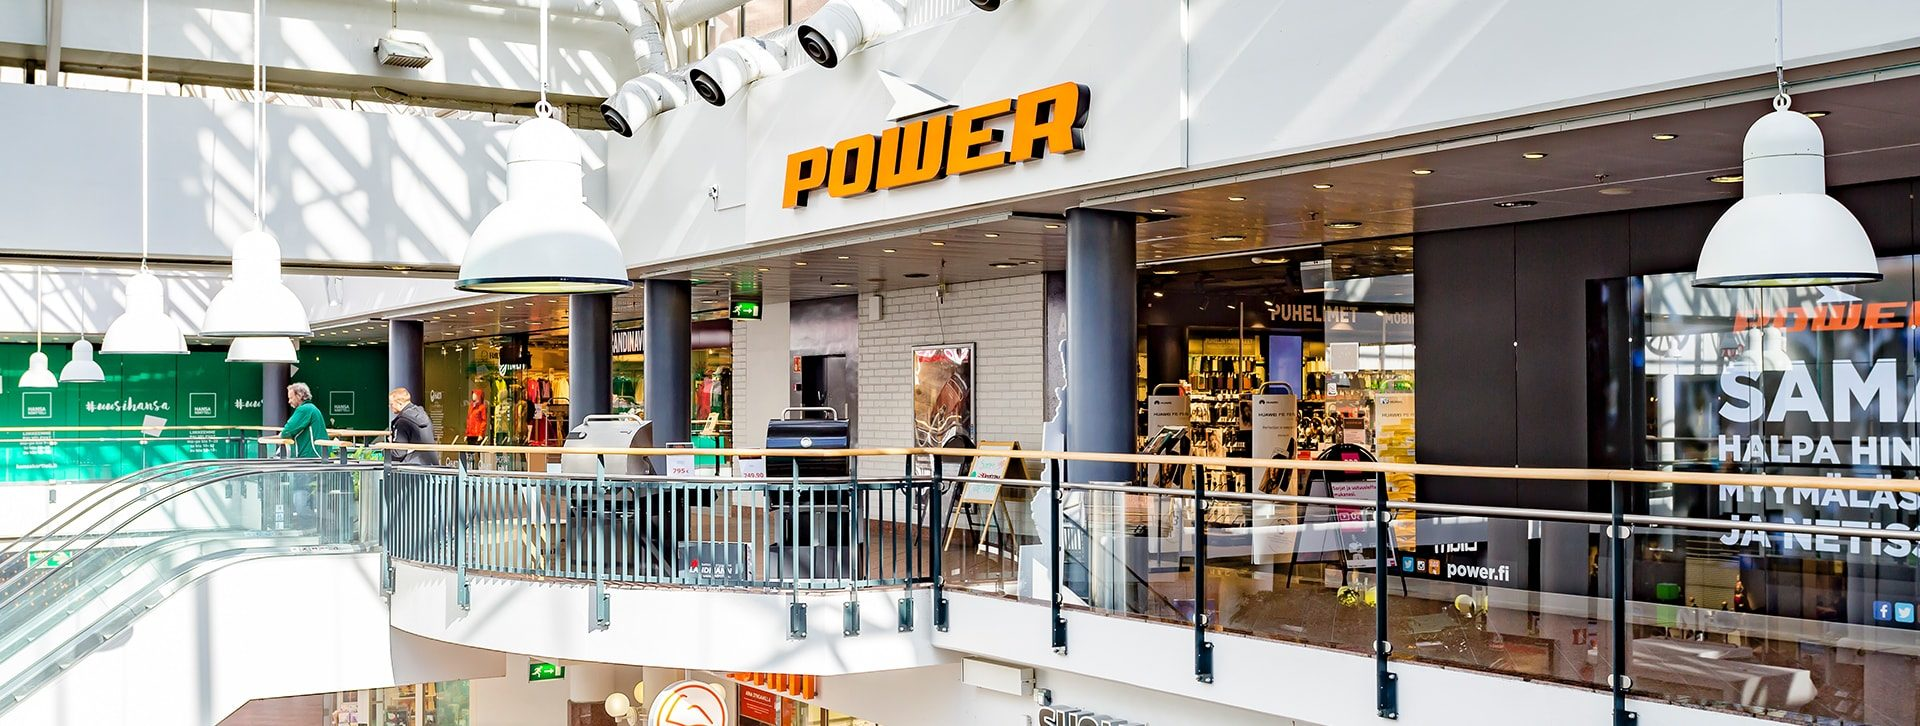 hansakortteli_power_turku_stockmann_2